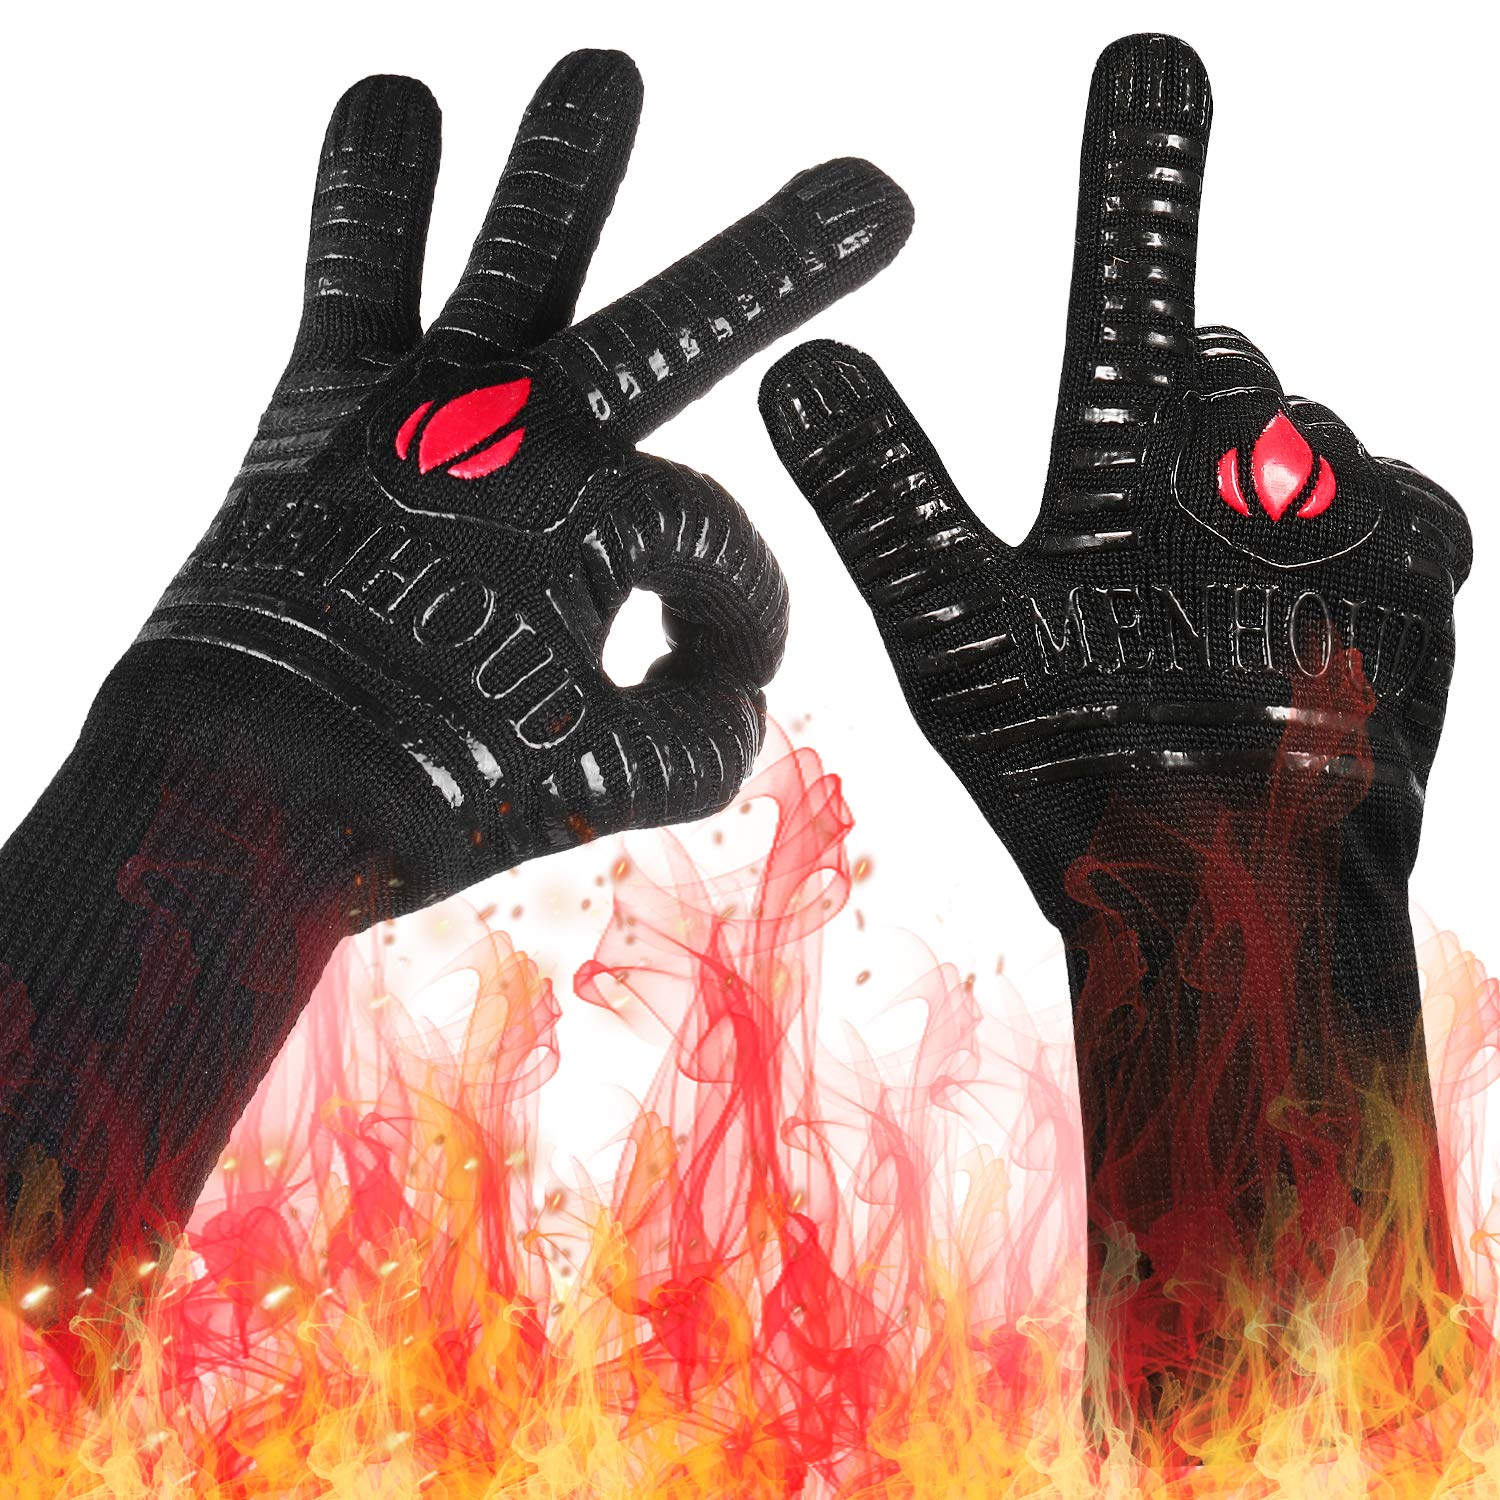 1472℉ Extreme Heat Resistant BBQ Gloves, Food Grade Kitchen Oven Gloves - Flexible Hot Grilling Gloves with Cut Resistant, Silicone Non-Slip Cooking Gloves for Grilling, Welding, Cutting (1 Pair)